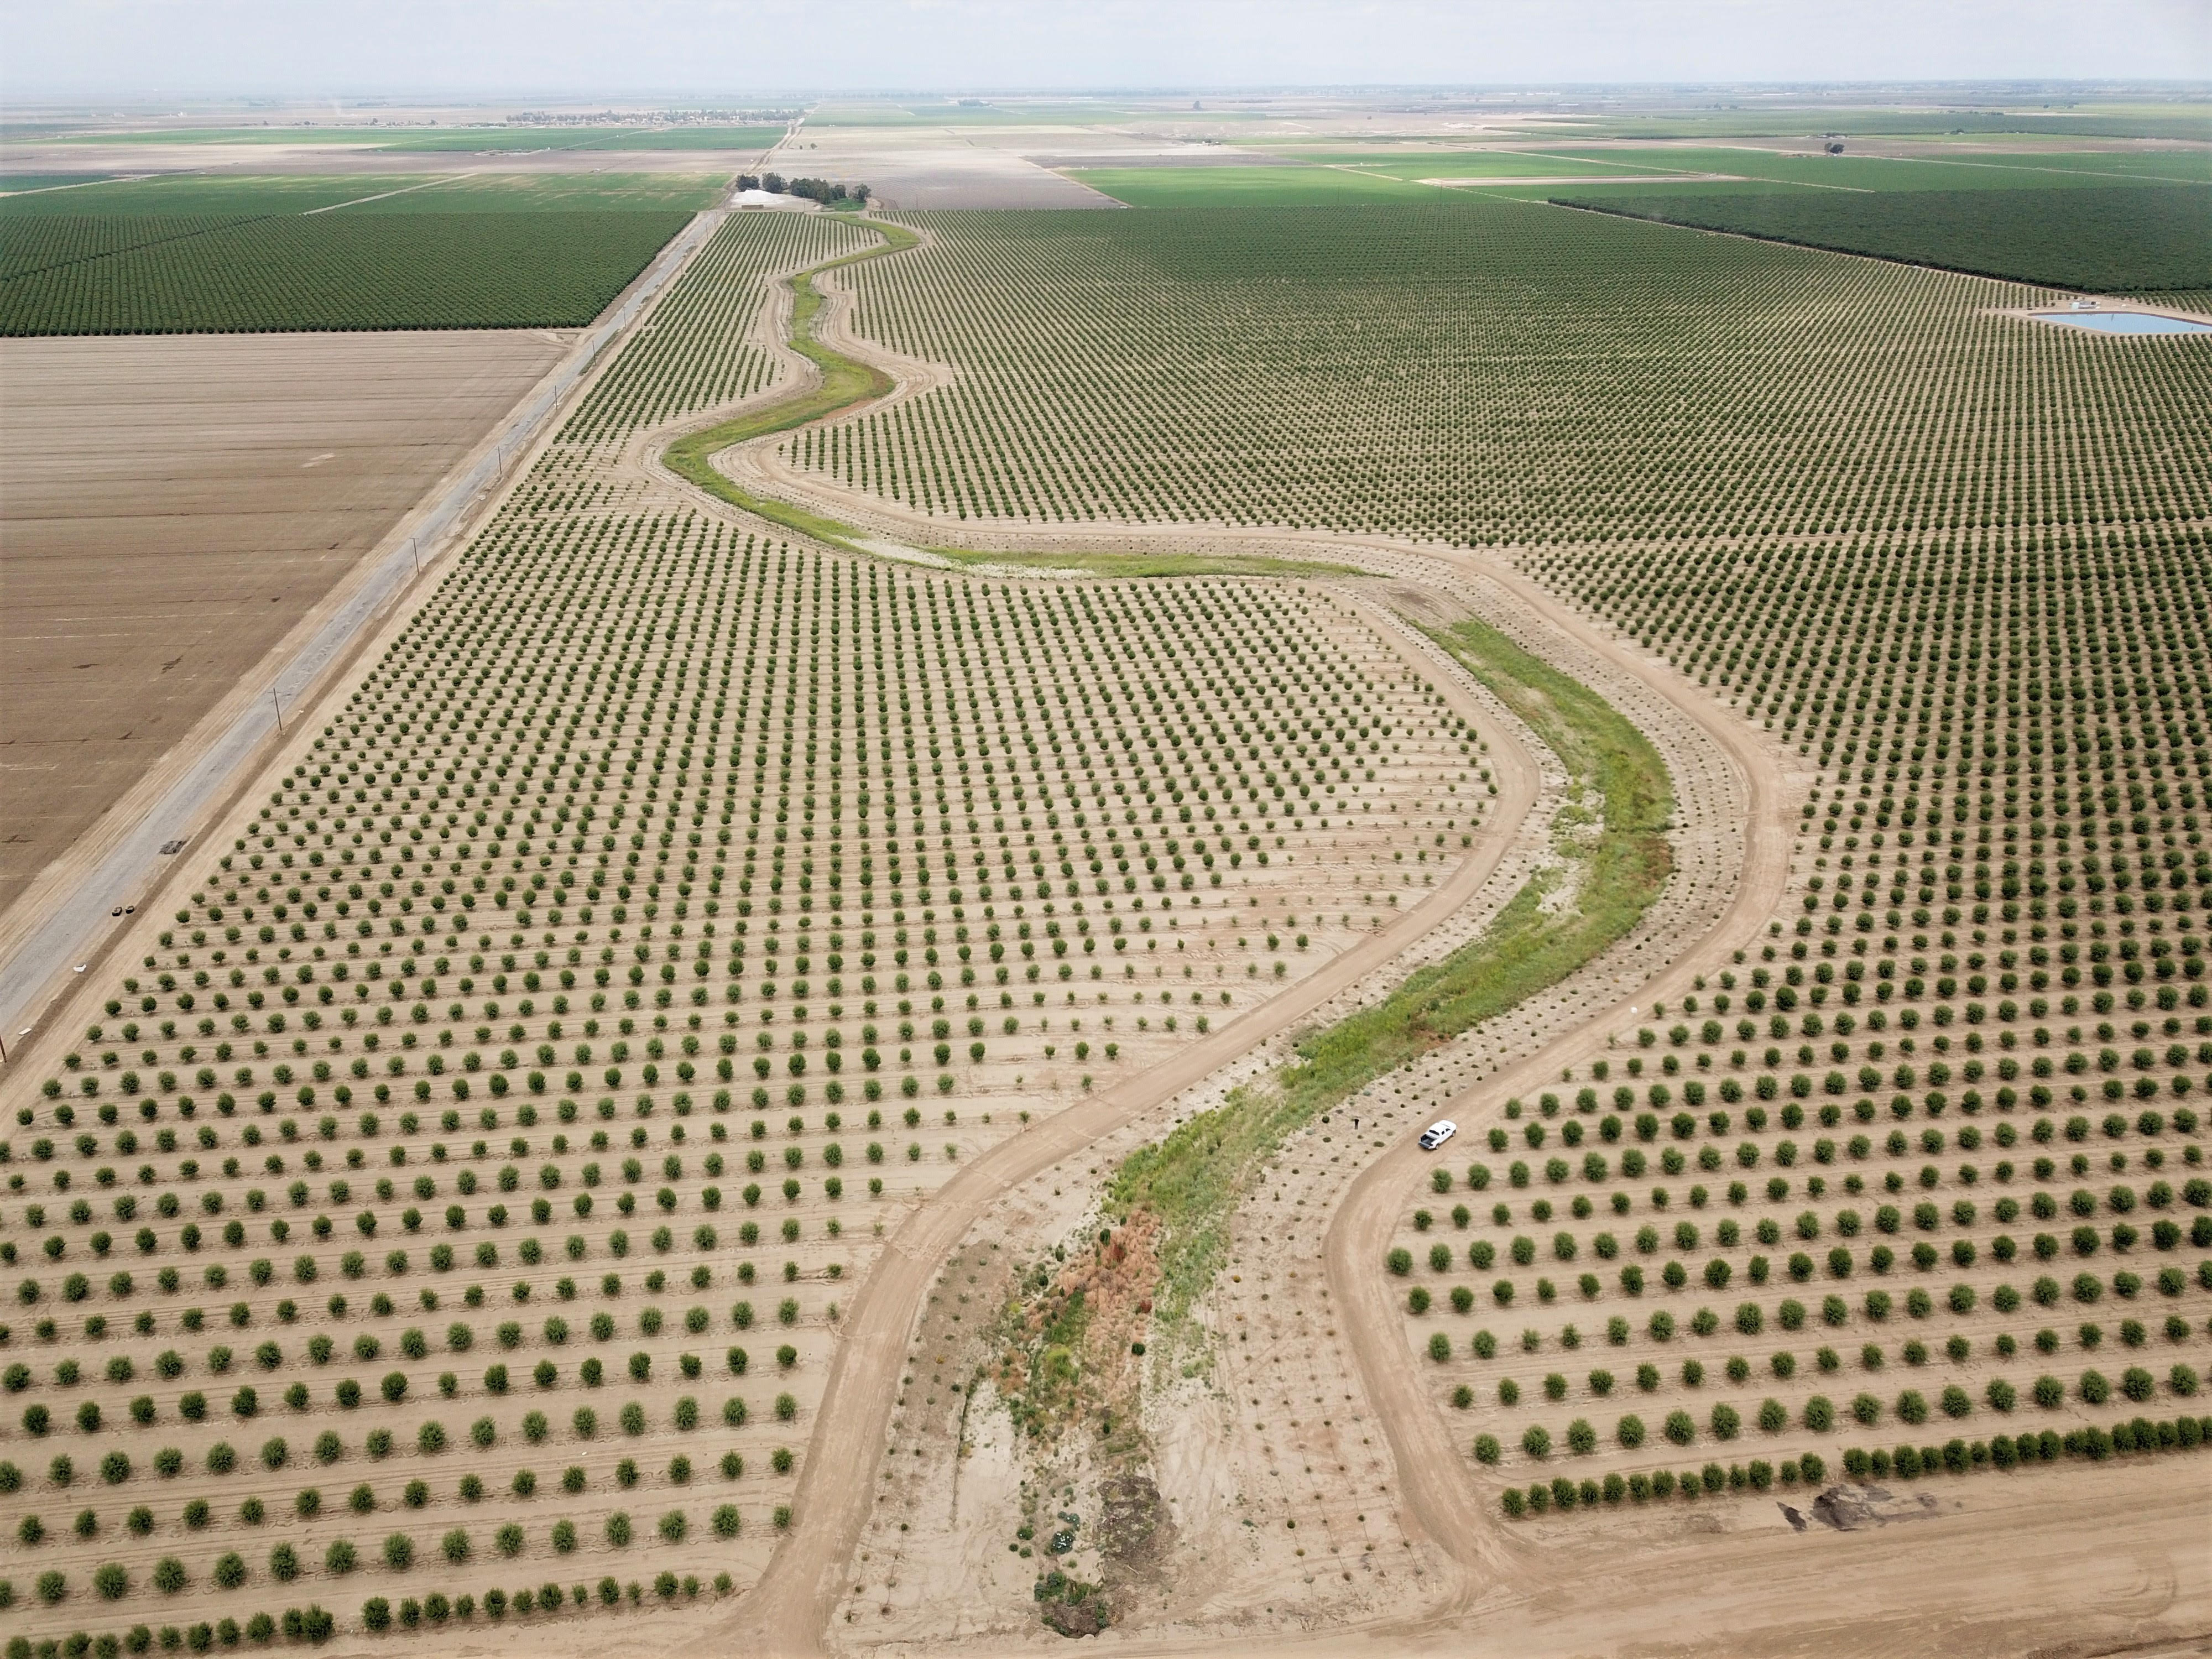 A landscape-scale aerial photo of California's Central Valley with pollinator meadows and hedgerows among sparse almond fields.